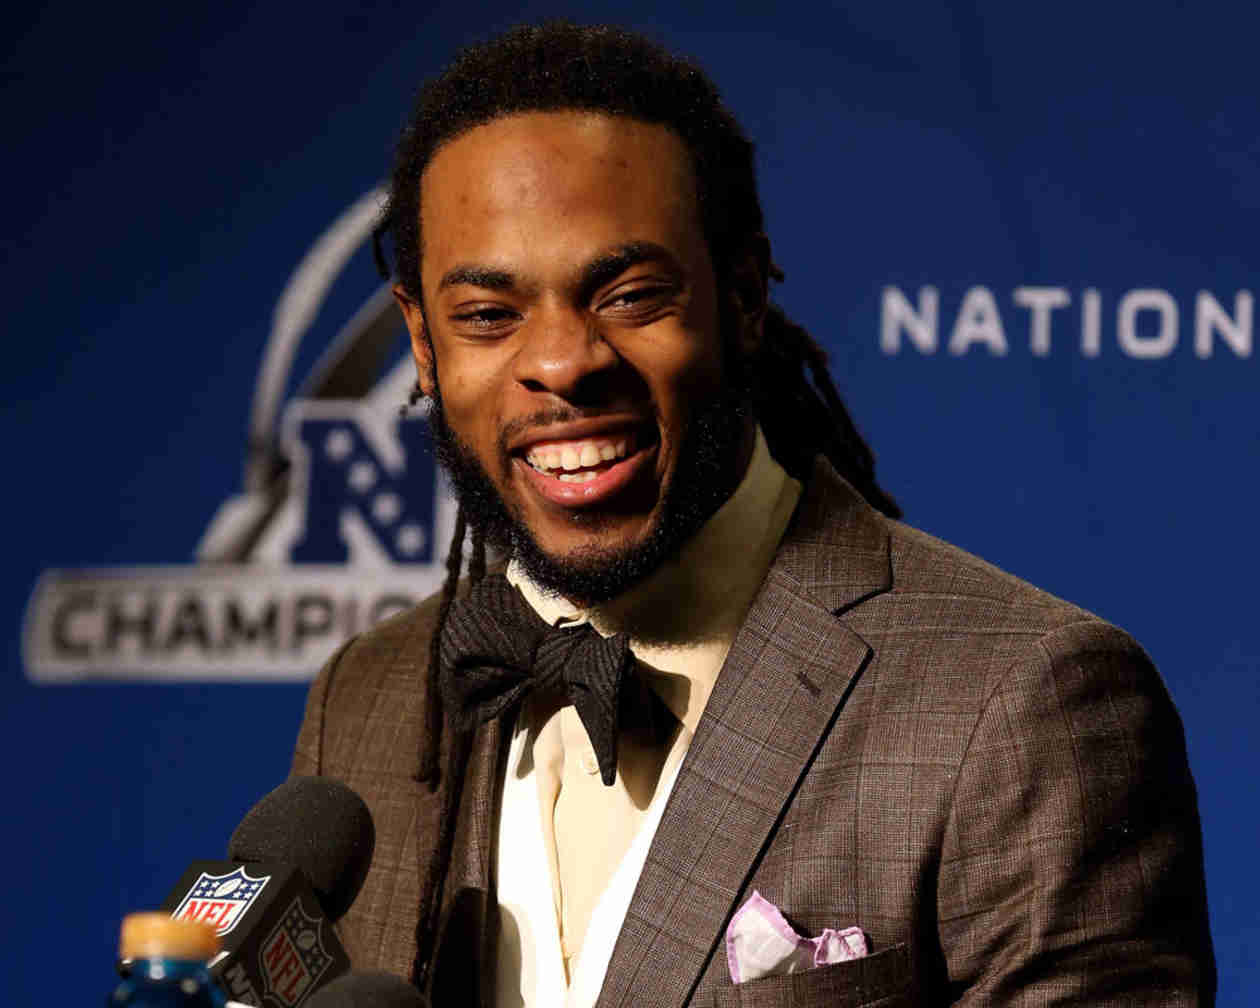 Who Is Richard Sherman? 5 Things to Know About the Seahawks Cornerback